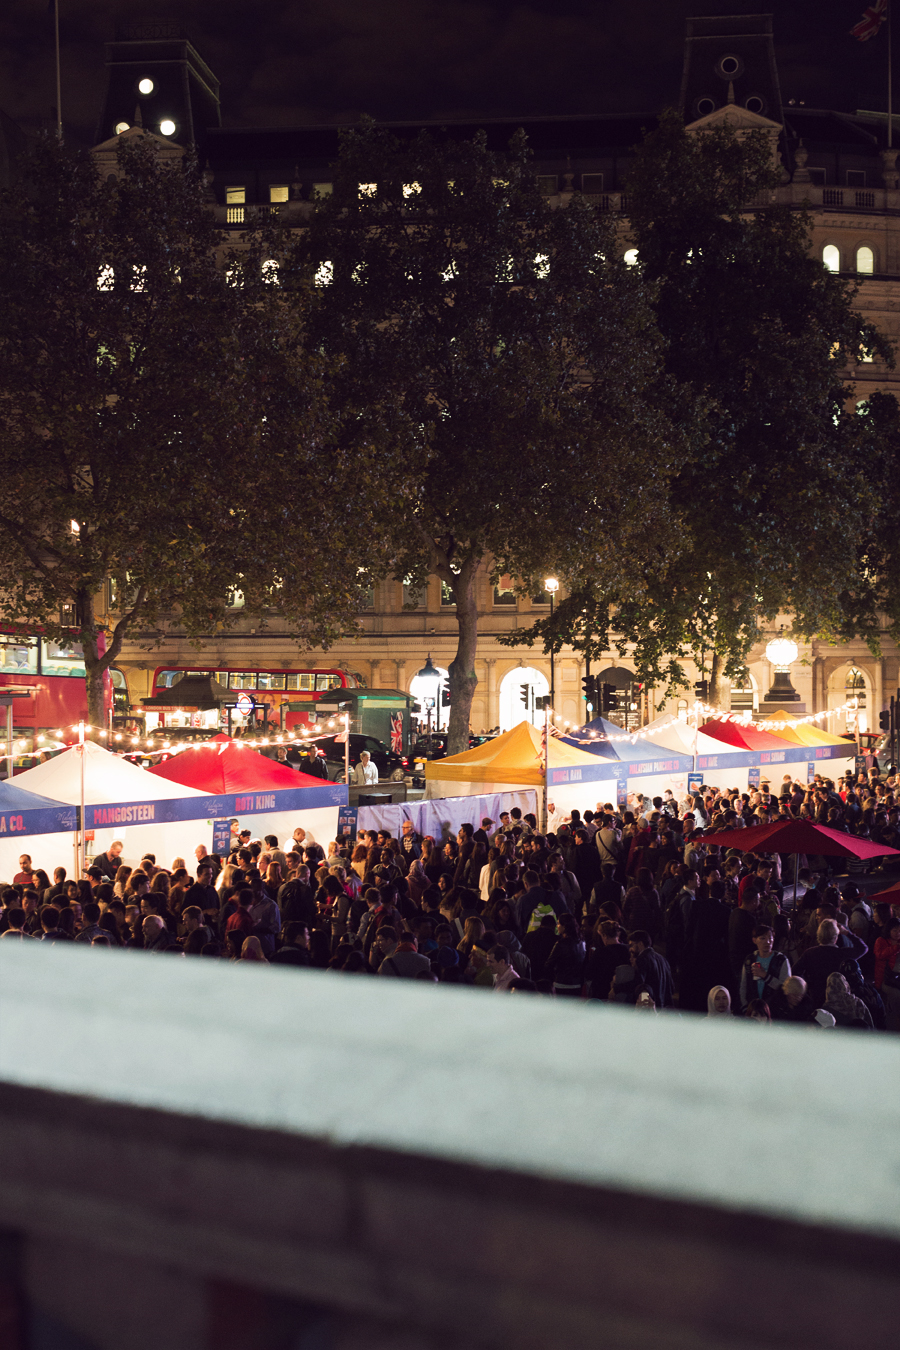 Malaysia Night, Trafalgar Square, London, 2014